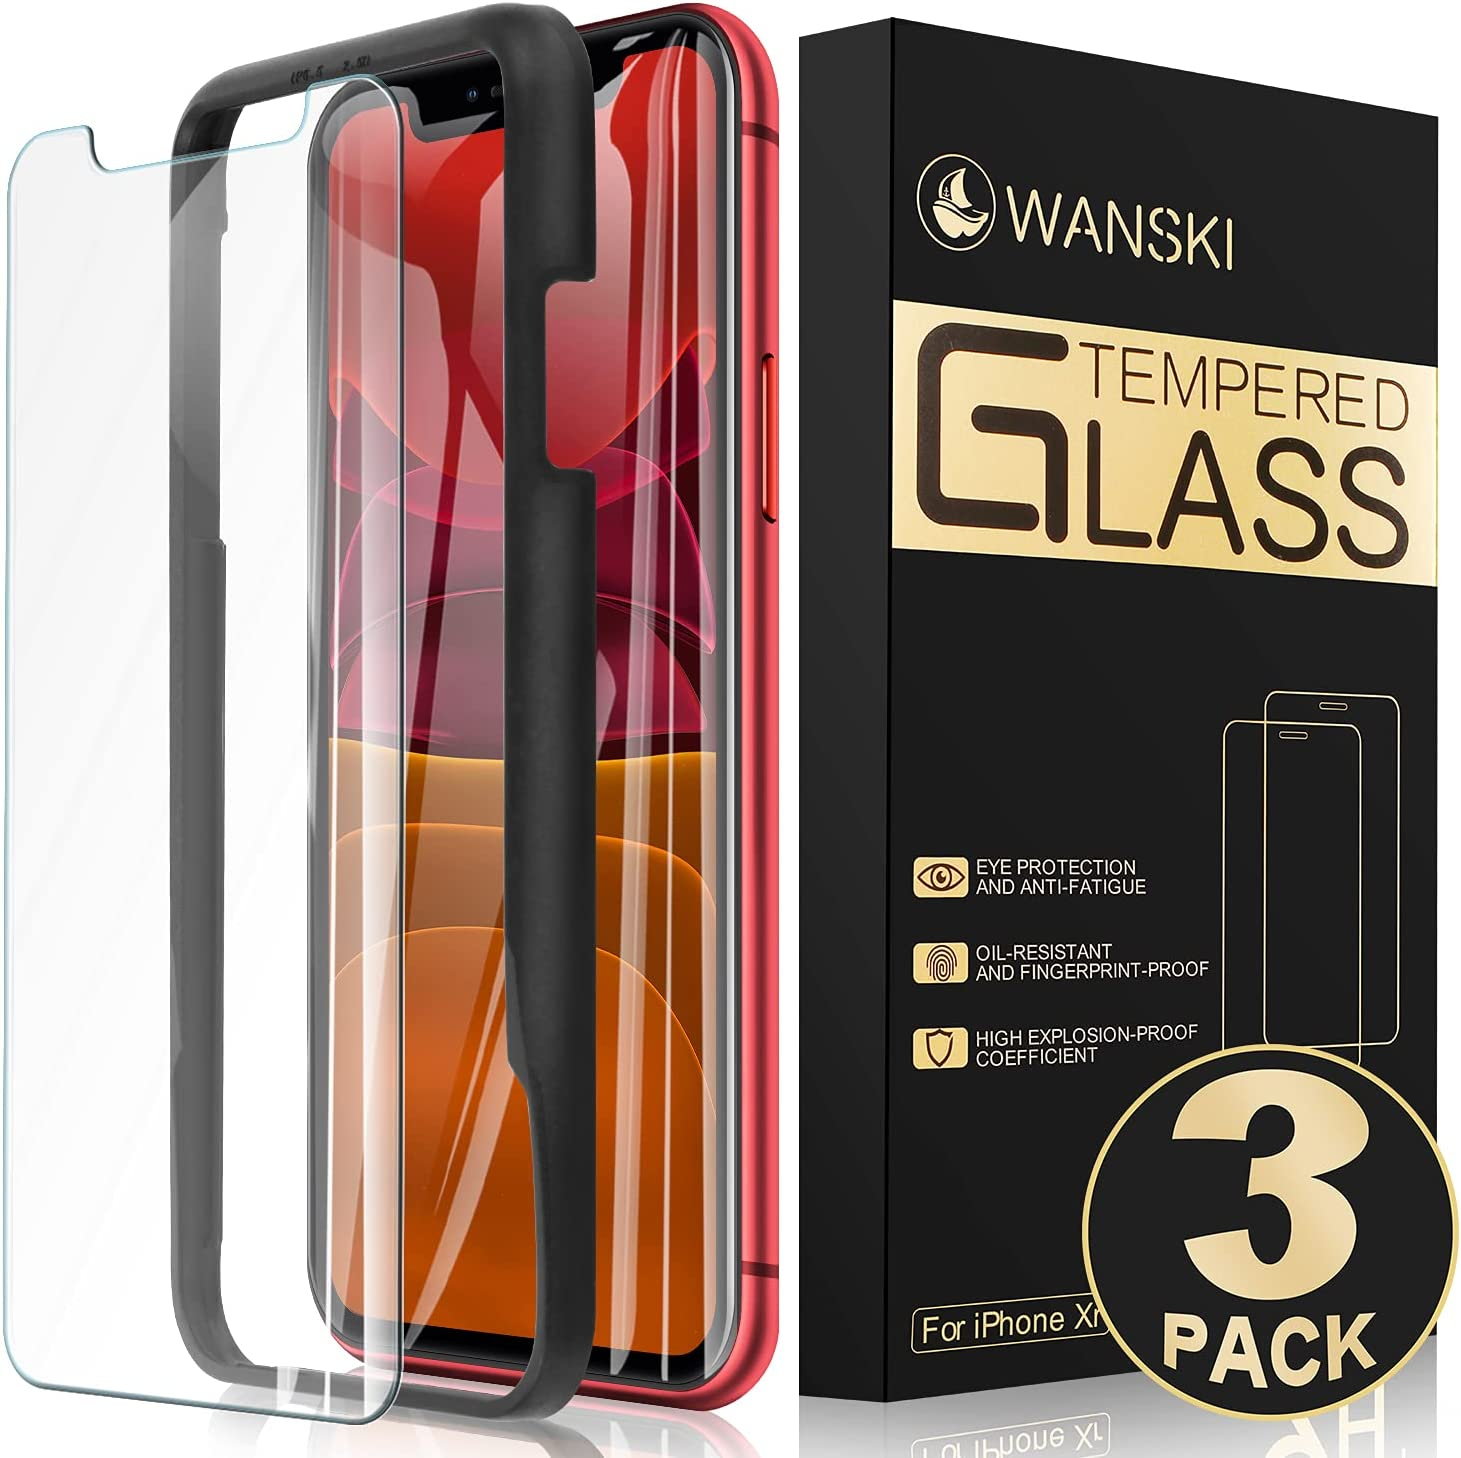 Wanski Tempered Glass Screen Protector for iPhone Xs, iPhone X, iPhone 11 Pro, Easy Installation [3 Pack]